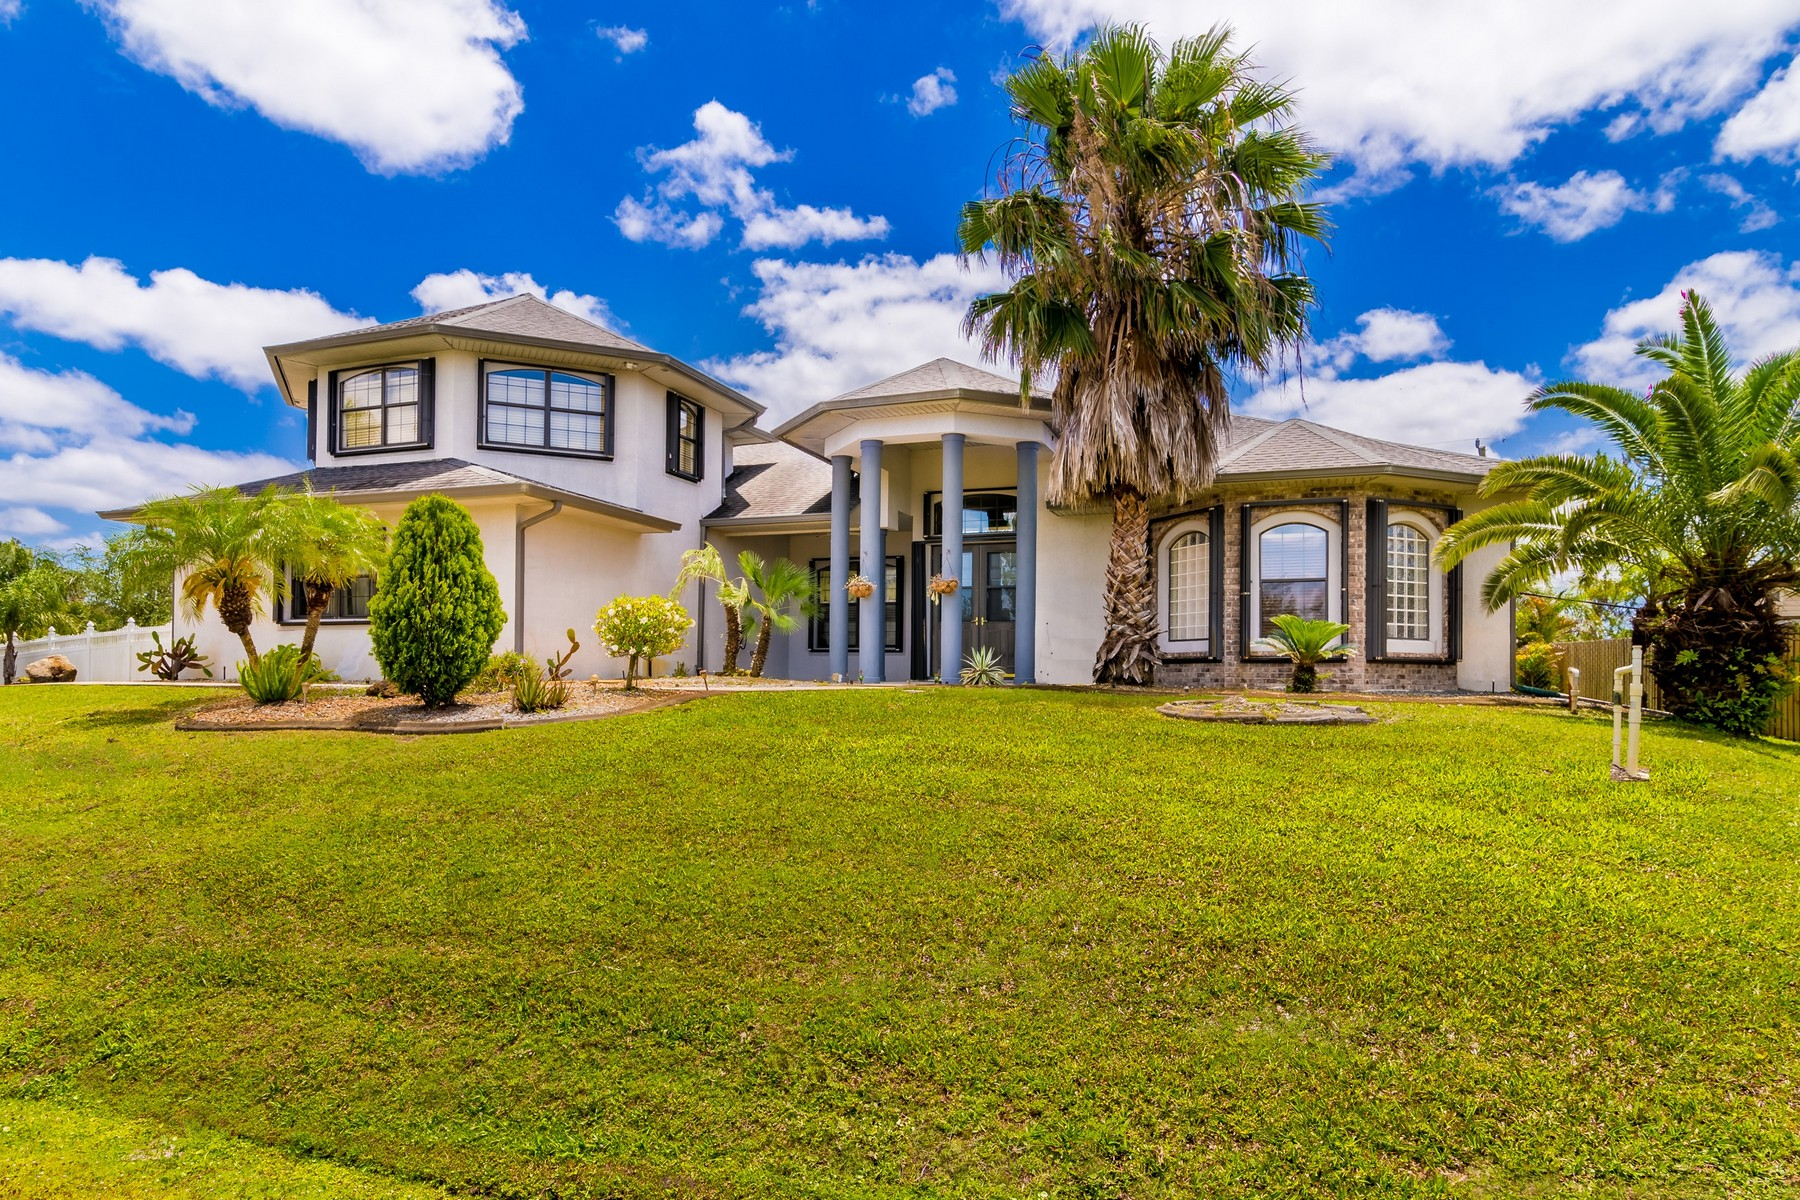 Single Family Home for Sale at Custom Built Home with Tropical Feel 578 Lafayette Street Palm Bay, Florida 32908 United States